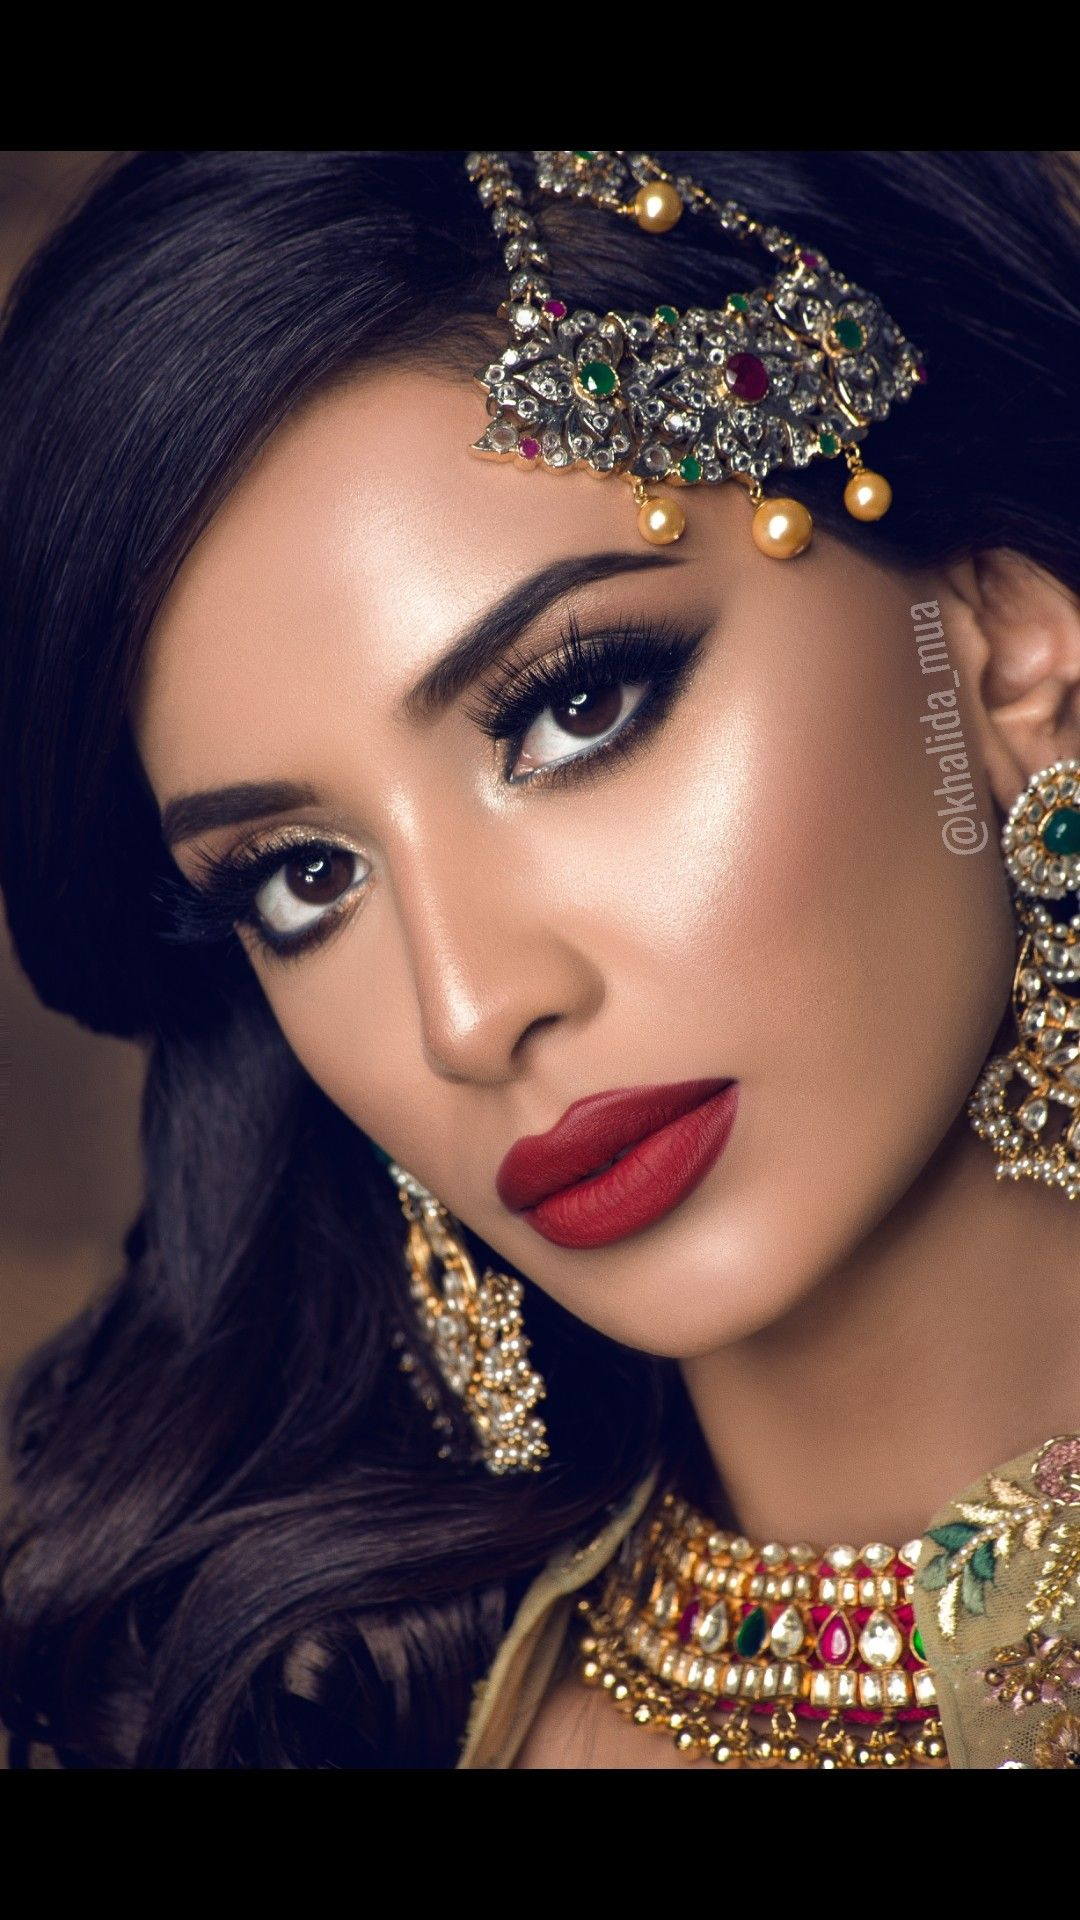 Indian Bridal Soft Makeup With Red Lips Smokey Eyes And Dramatic